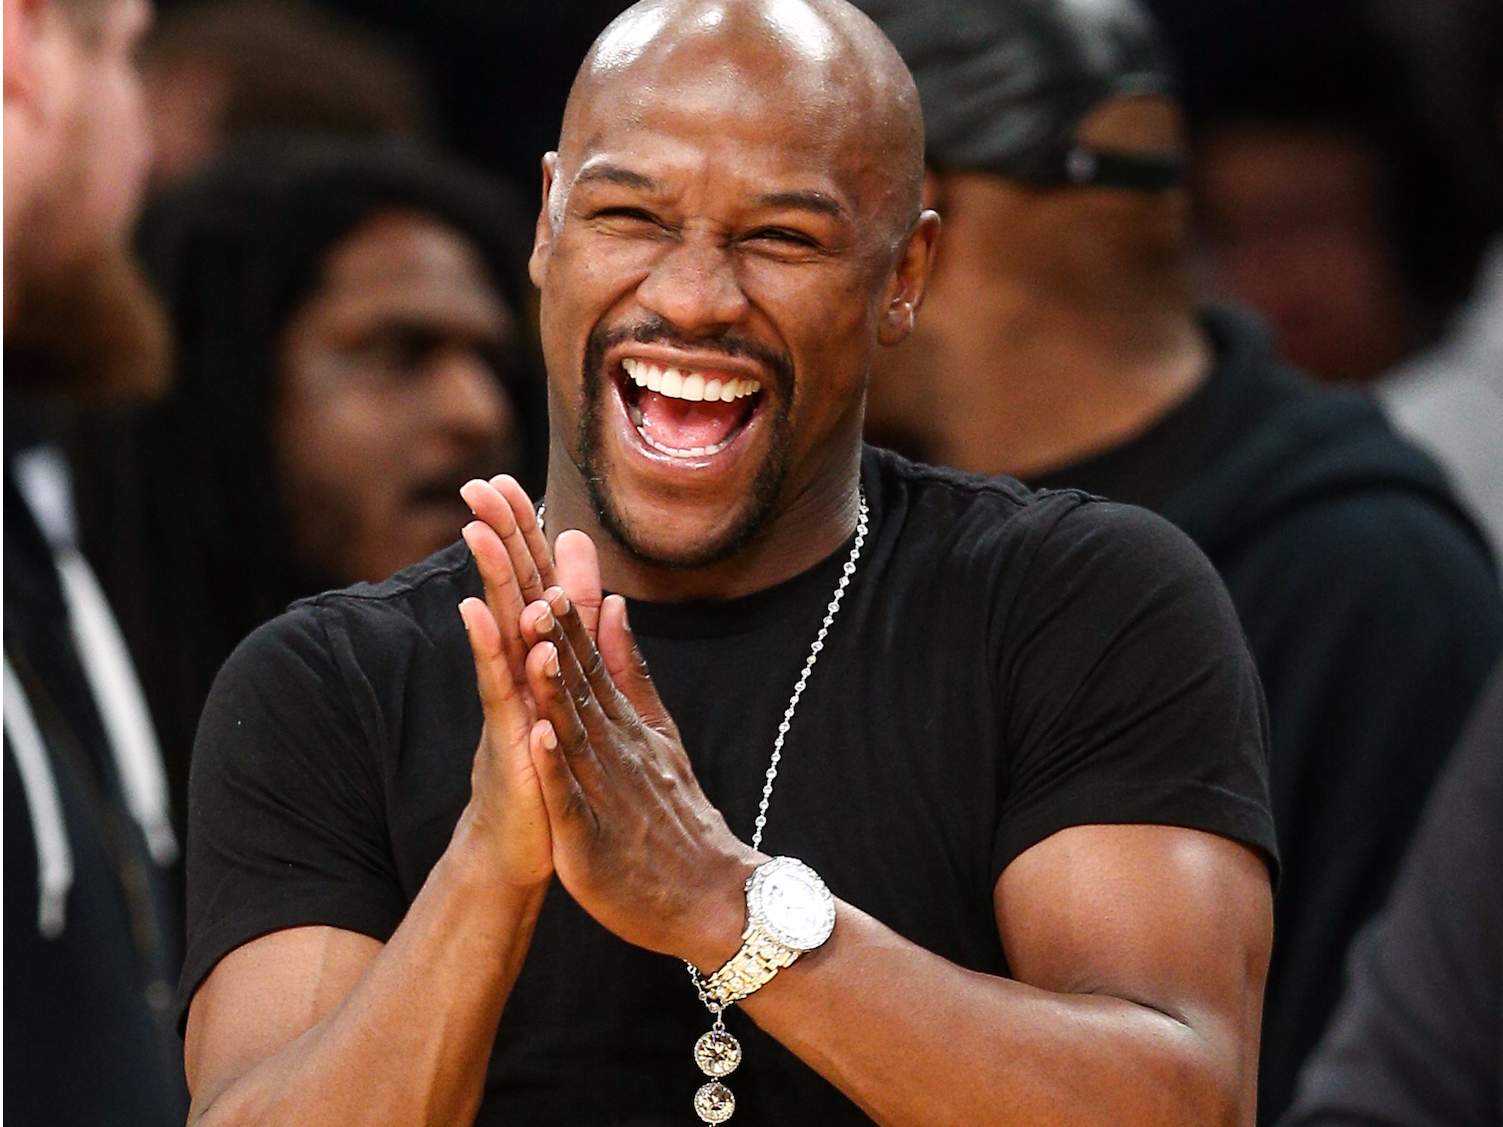 Floyd Mayweather Is Promoting Another Initial Coin Offering You Can Call Me Floyd Crypto Mayweather Floyd Mayweather Oscar De La Hoya Boxing Workout